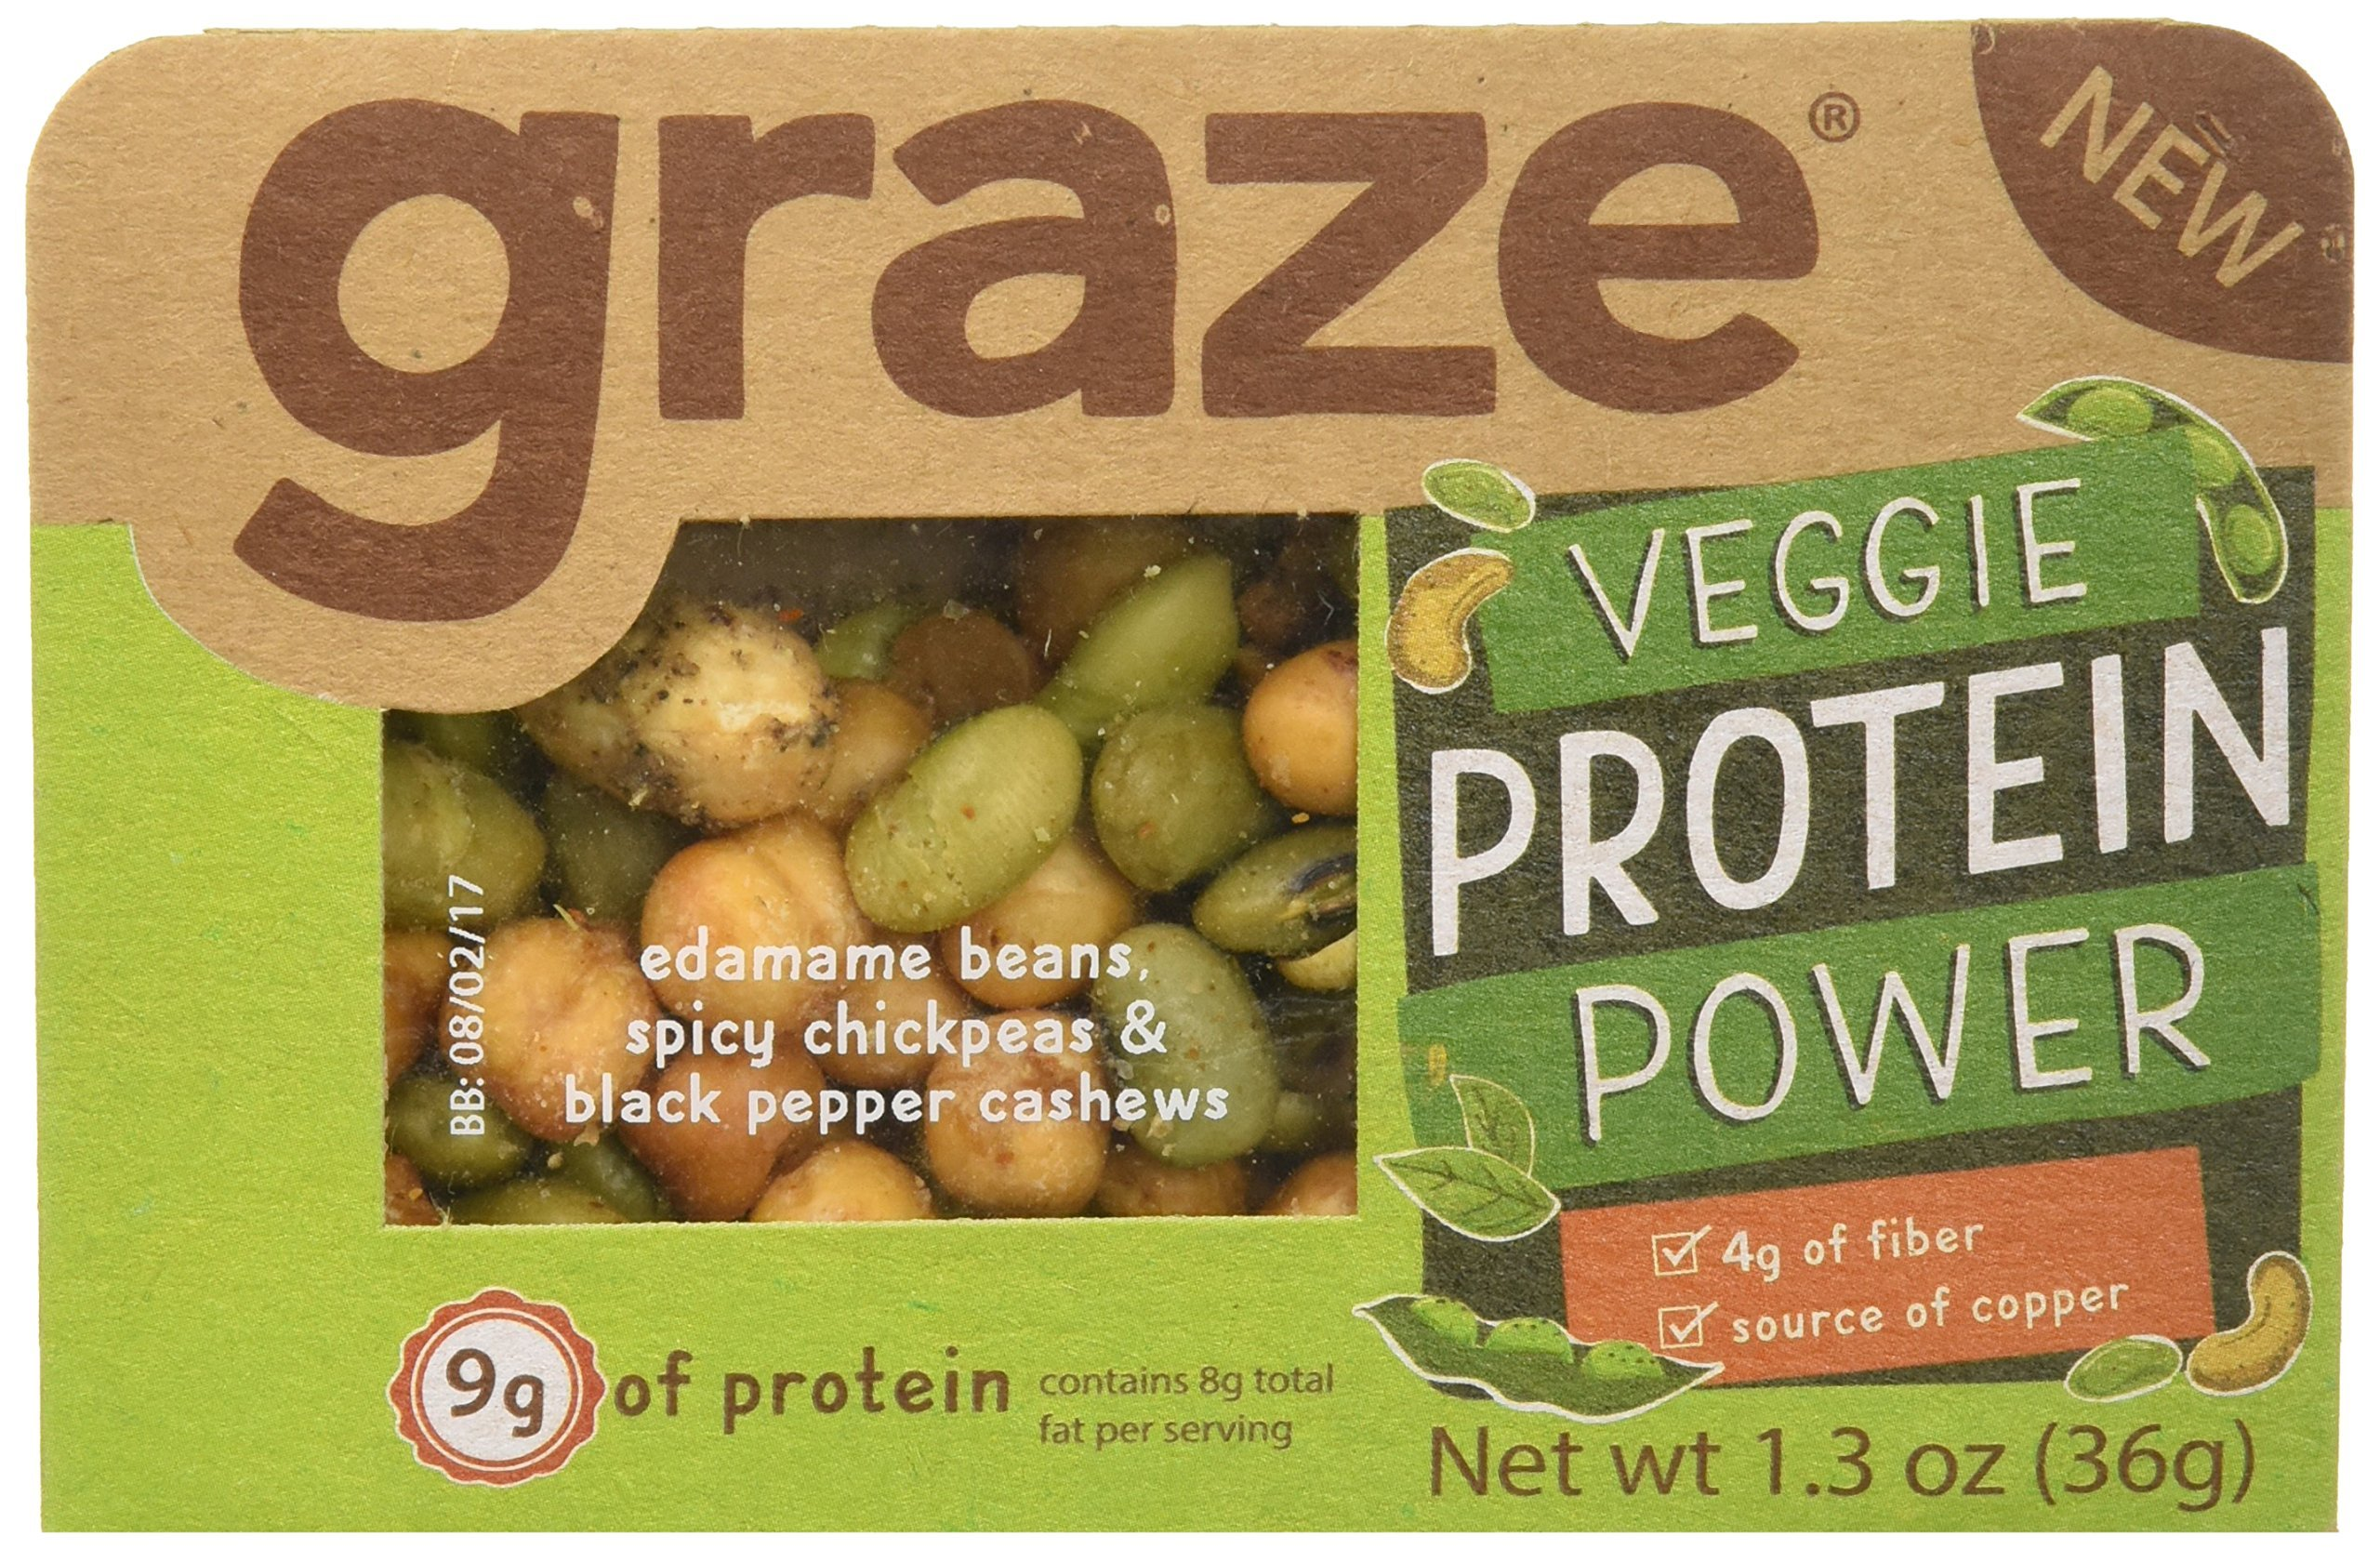 Graze Natural Veggie Protein Power Snack Mix with Spicy Chickpeas, Edamame Beans and Black Pepper Cashews, Tasty, Healthy, Natural Nut Trail Mix, 1.3 Ounce Box, 9 Pack